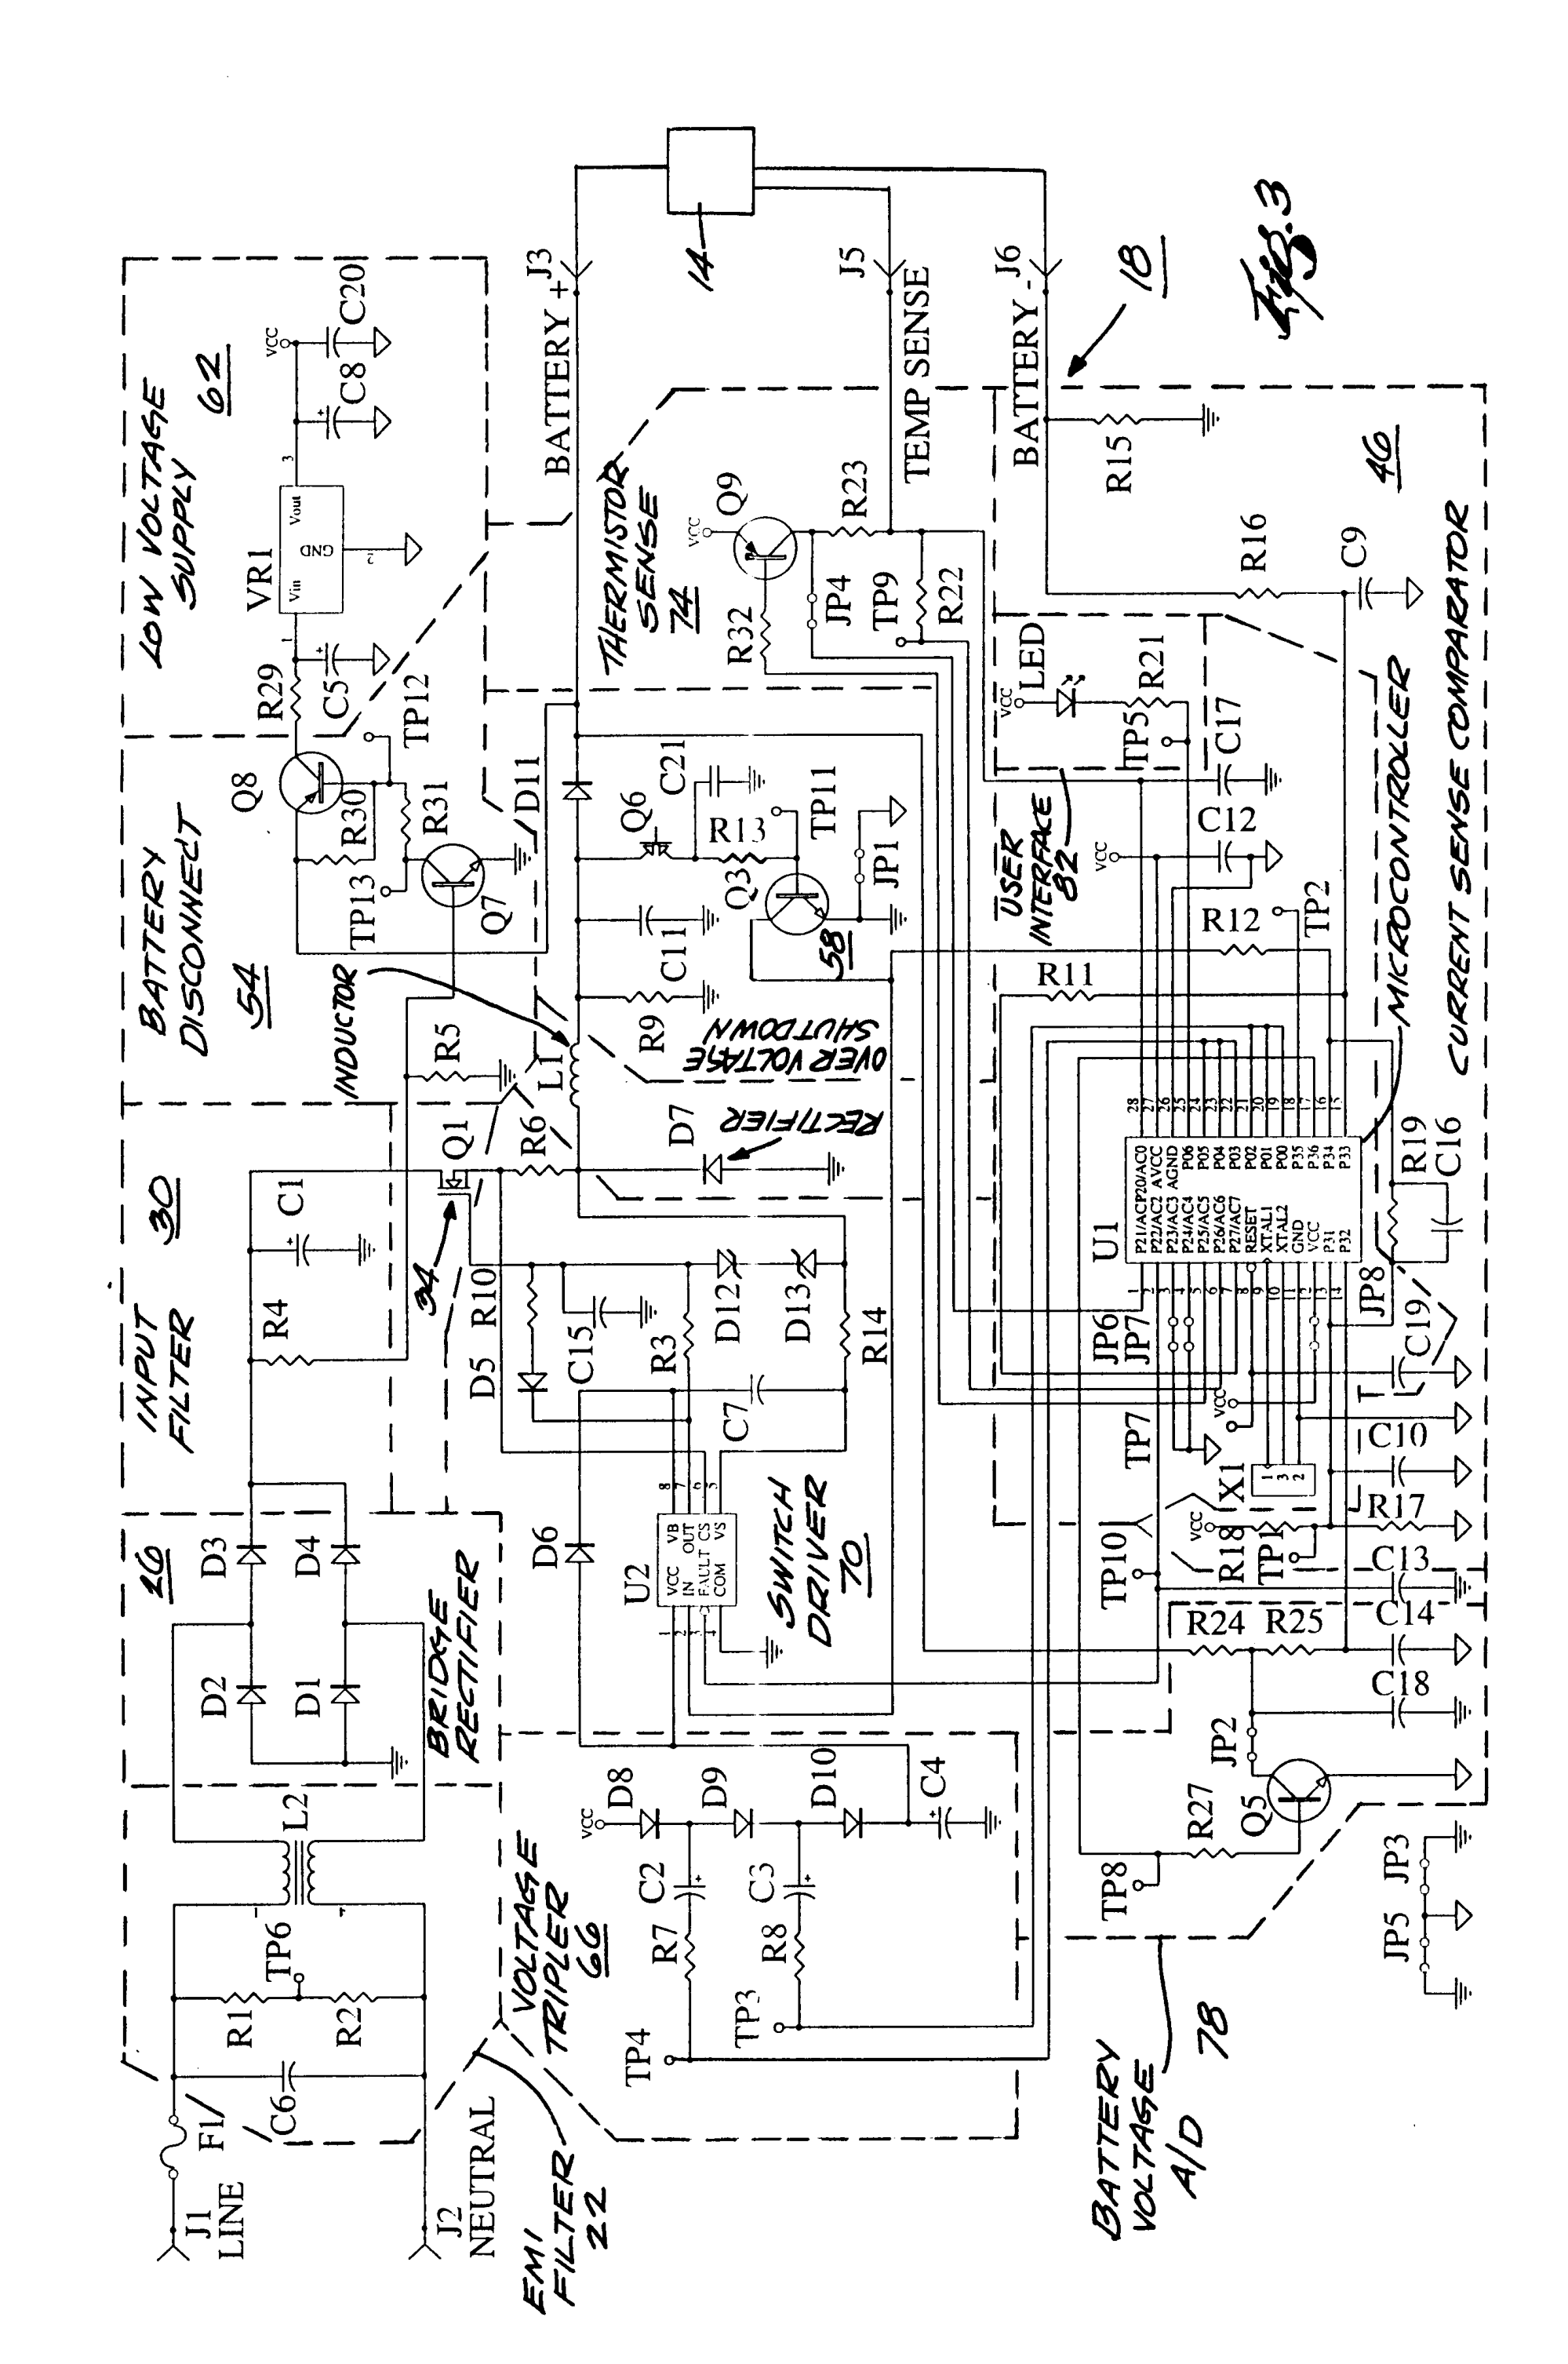 hight resolution of  20010424 d00003 patent us6222343 battery charger a method for charging a schumacher battery charger schumacher battery charger wiring schematic